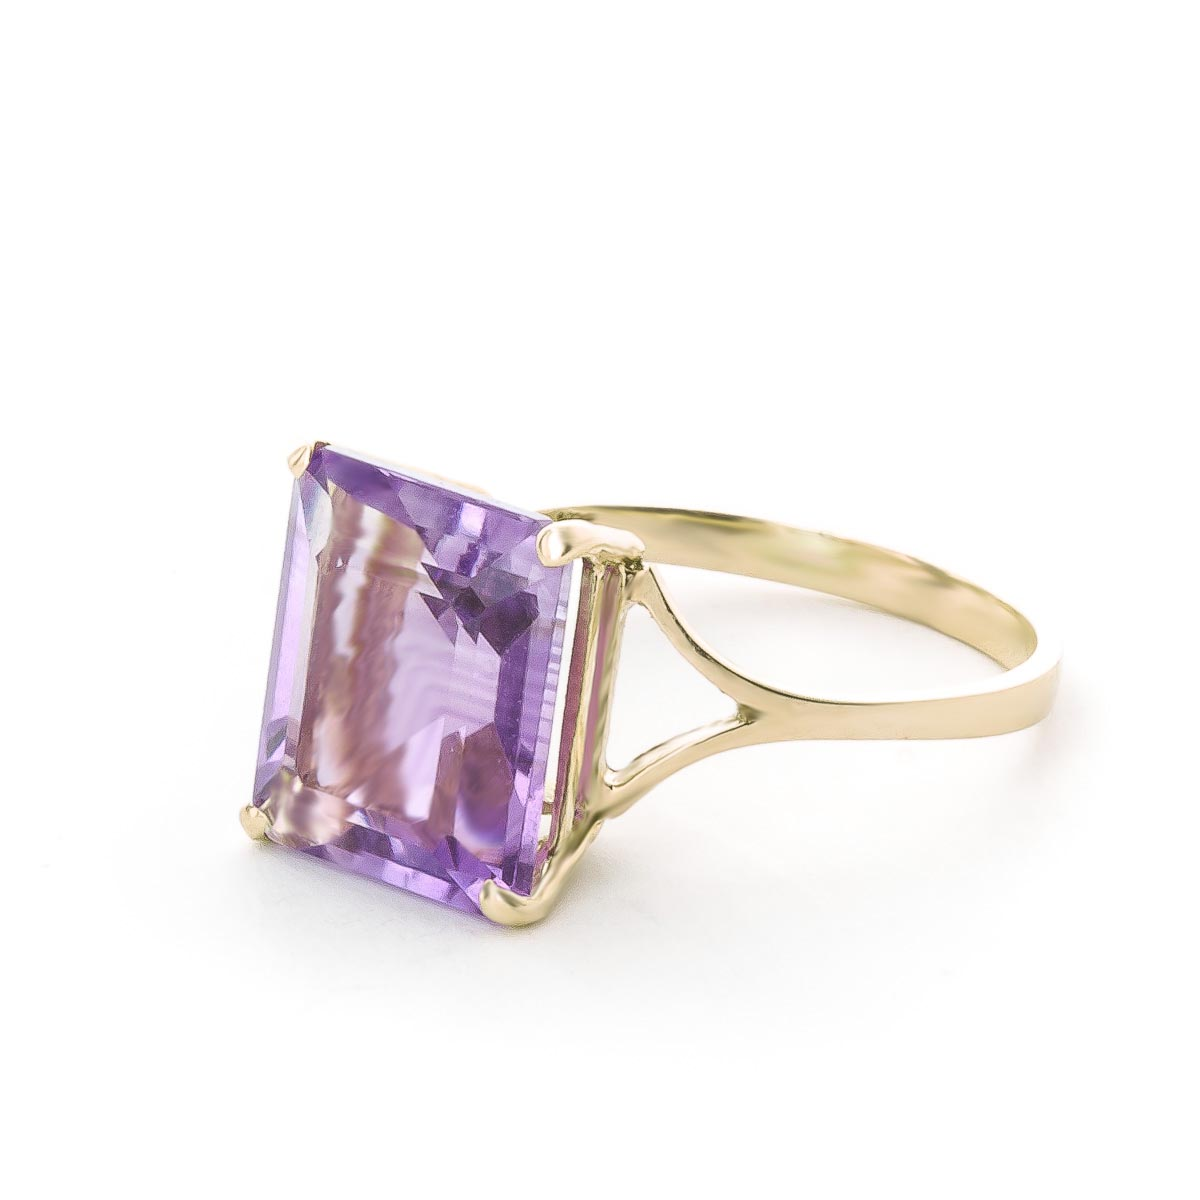 Amethyst Ring 6.5ct in 9ct Gold